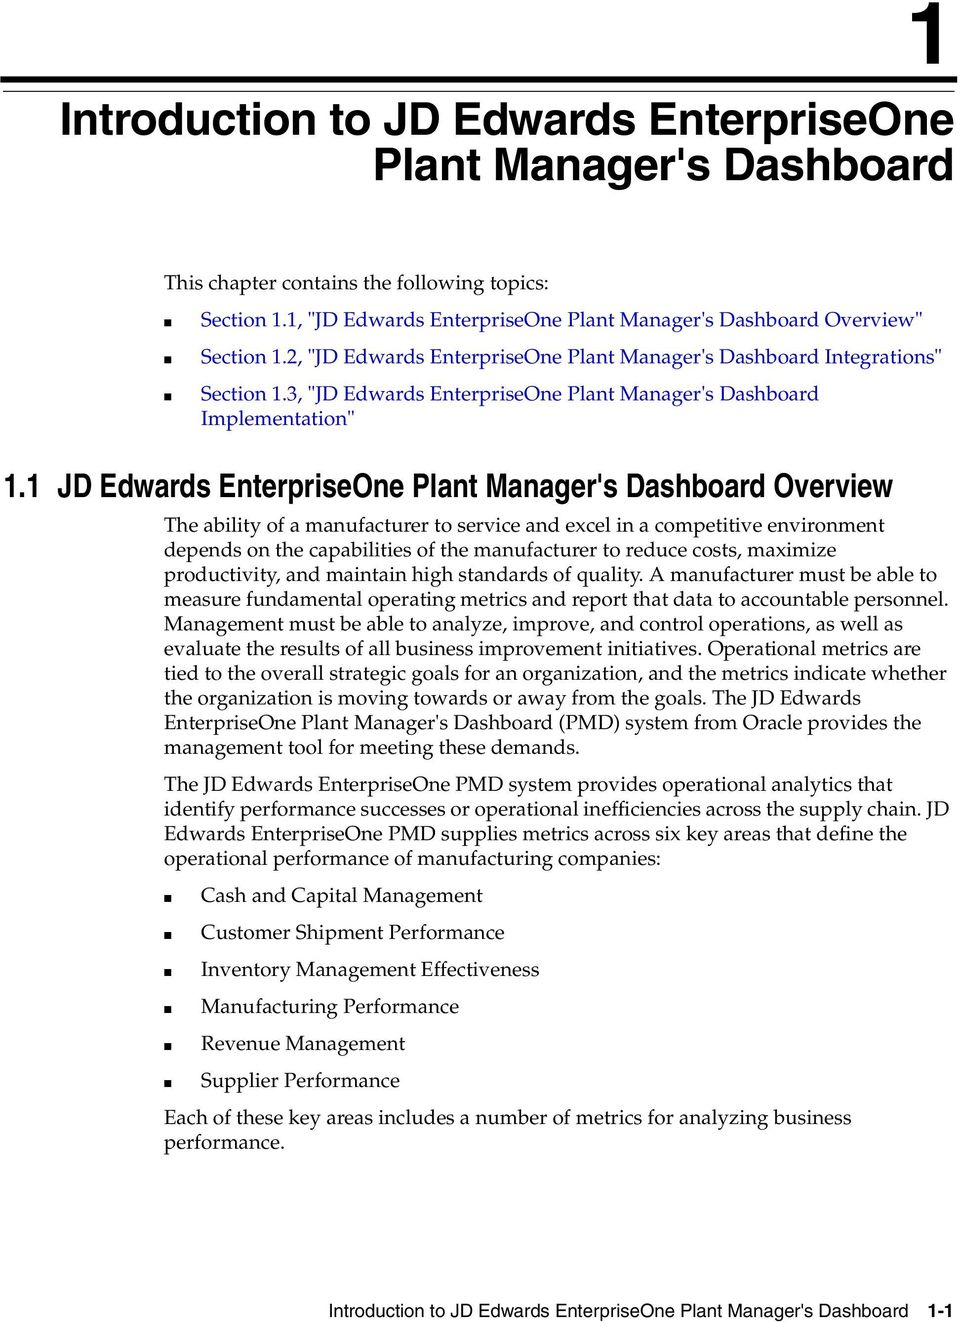 1 JD Edwards EnterpriseOne Plant Manager's Dashboard Overview The ability of a manufacturer to service and excel in a competitive environment depends on the capabilities of the manufacturer to reduce